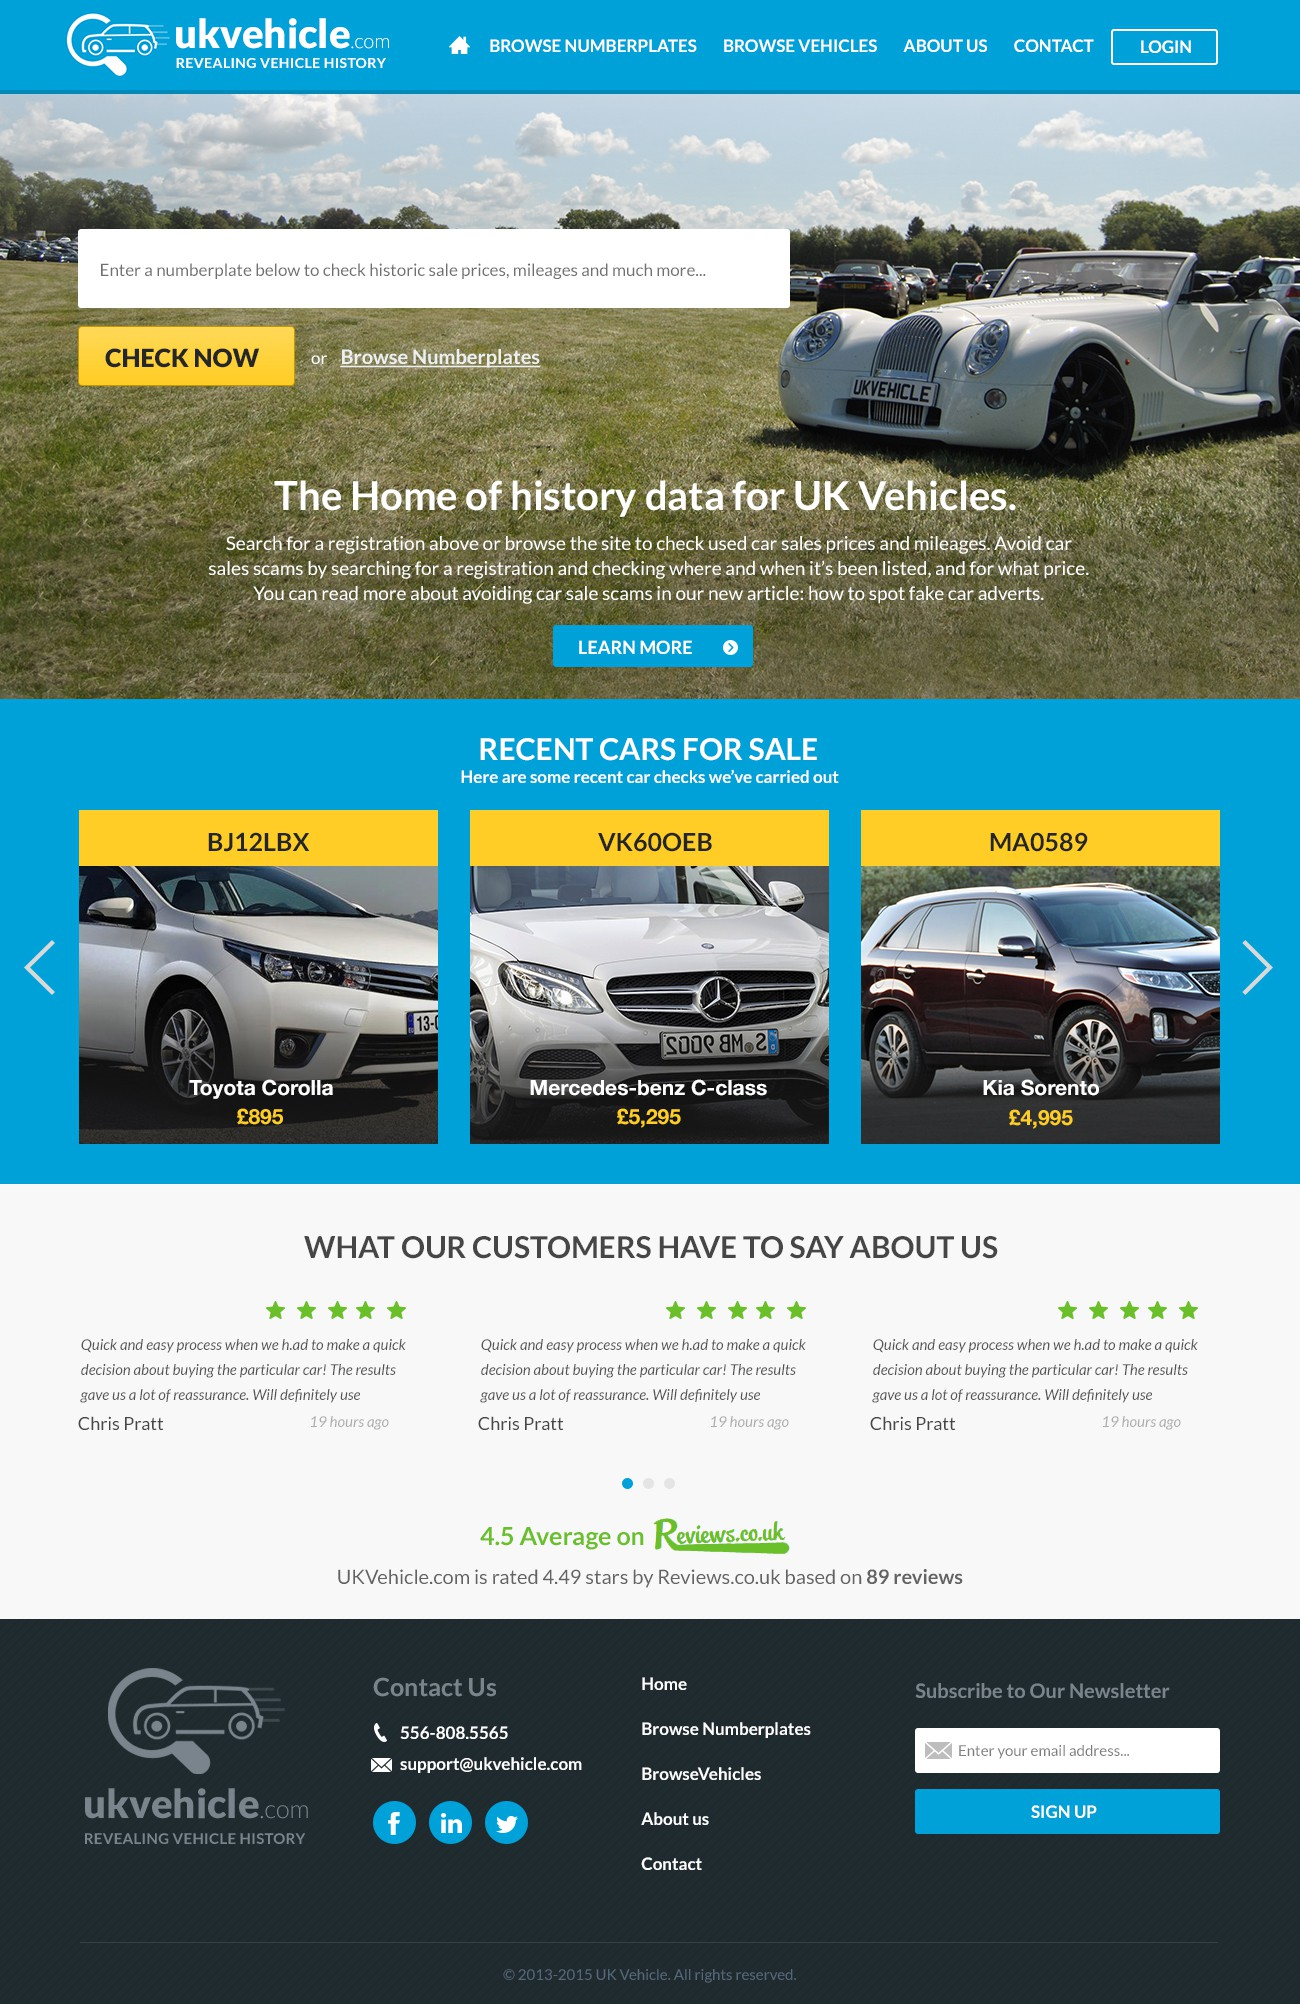 Help us revolutionise car buying! Site designs for innovative car history check.